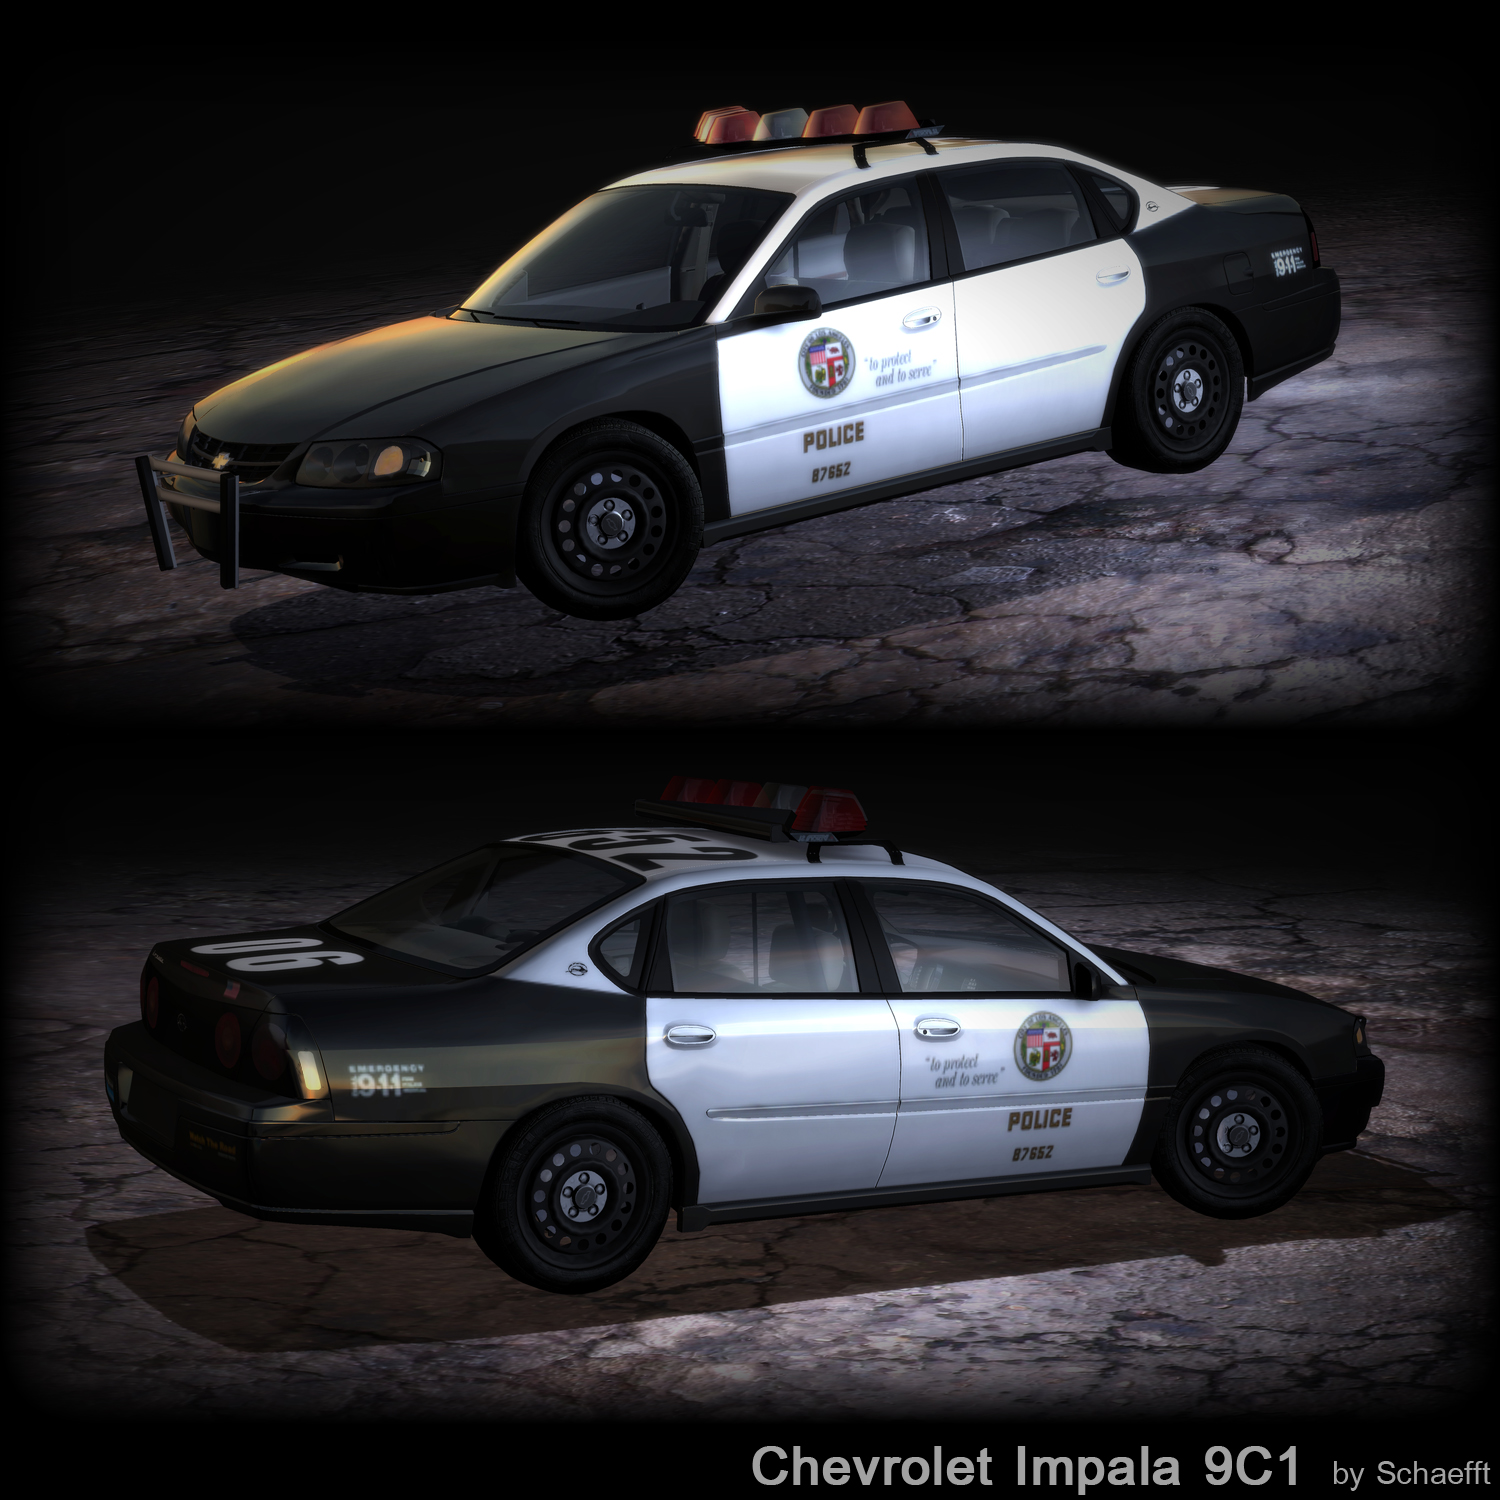 Chevy Impala 9C1 by Schaefft